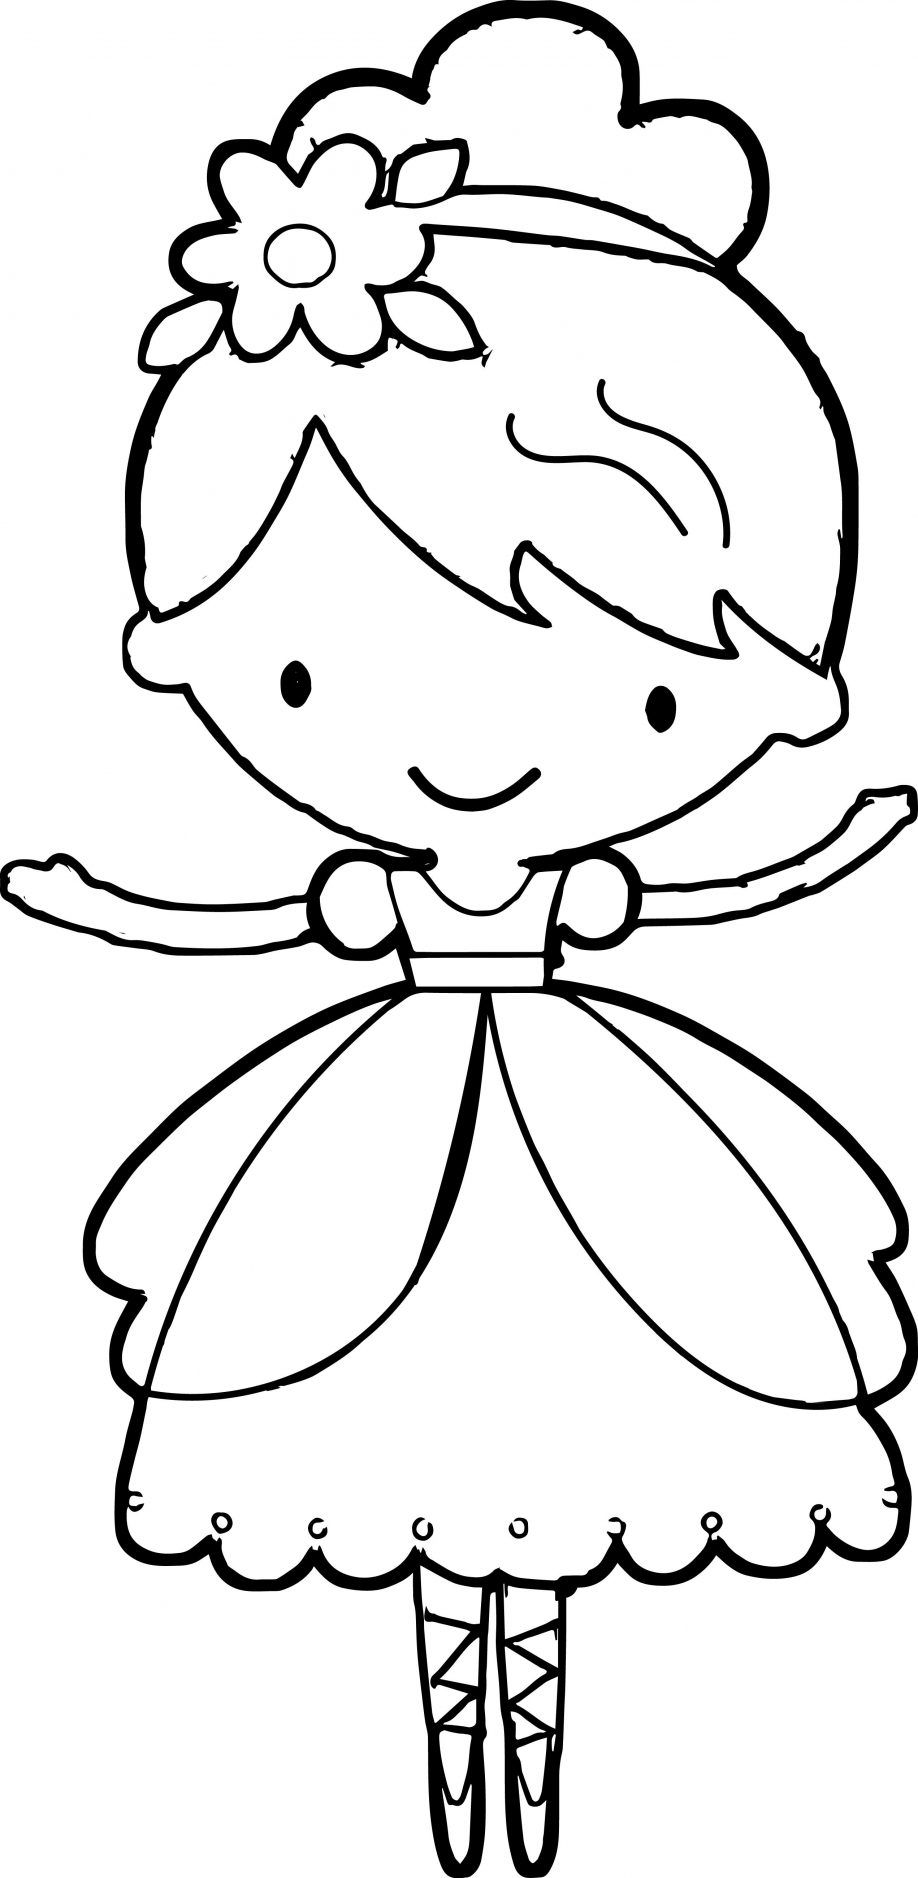 coloring picture of girl girl dancing coloring pages at getcoloringscom free coloring girl picture of